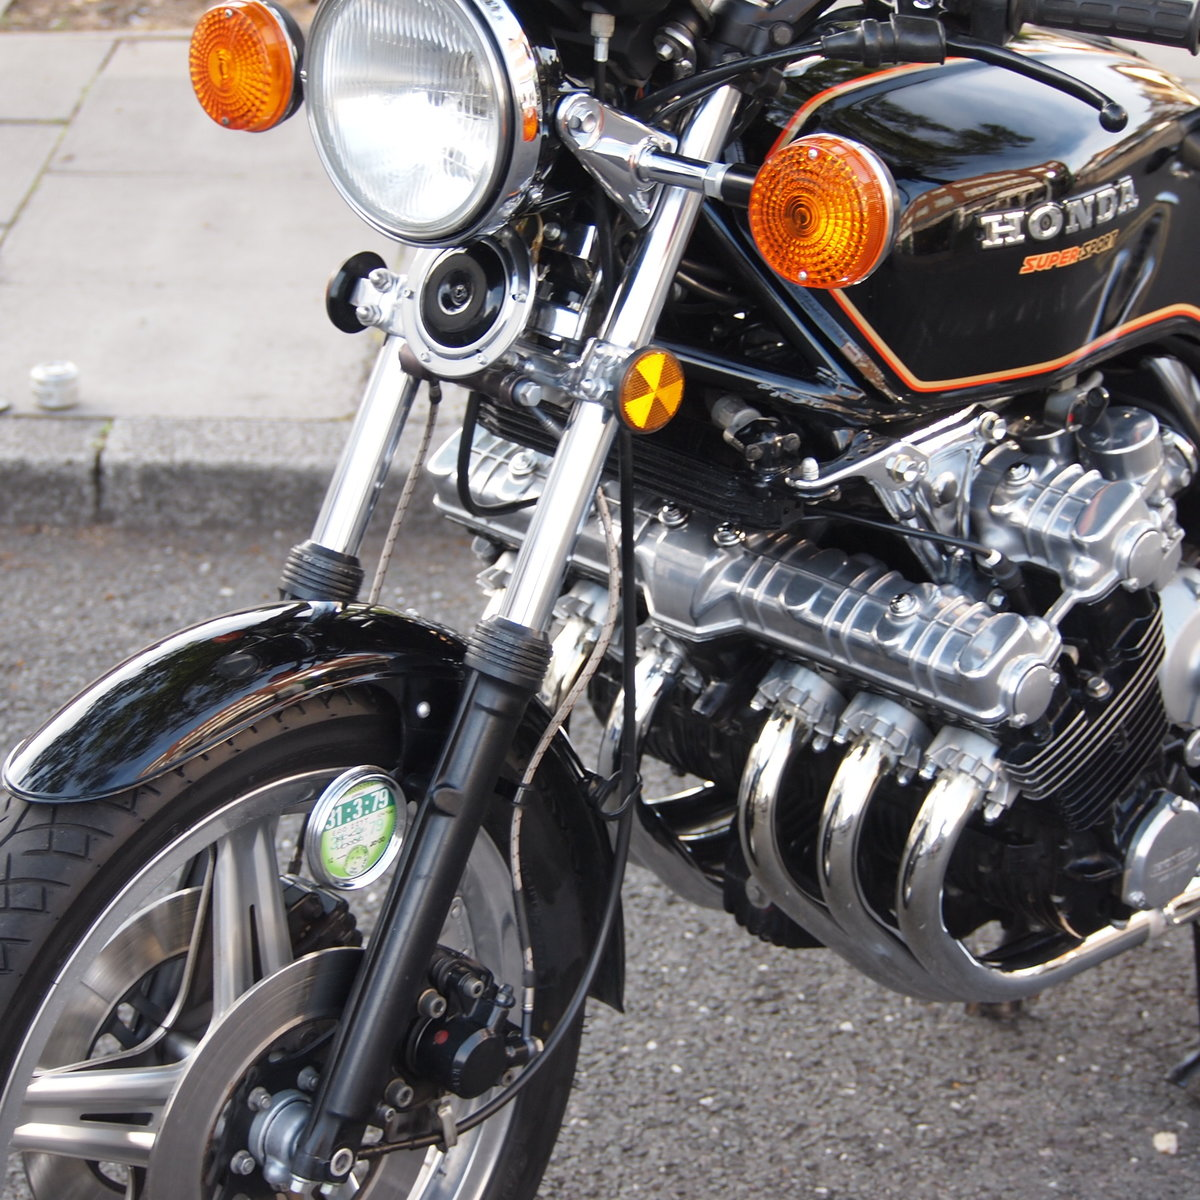 1979 Honda CBX1000Z Early Rare Black Model, Stunning Condition. For Sale (picture 2 of 6)